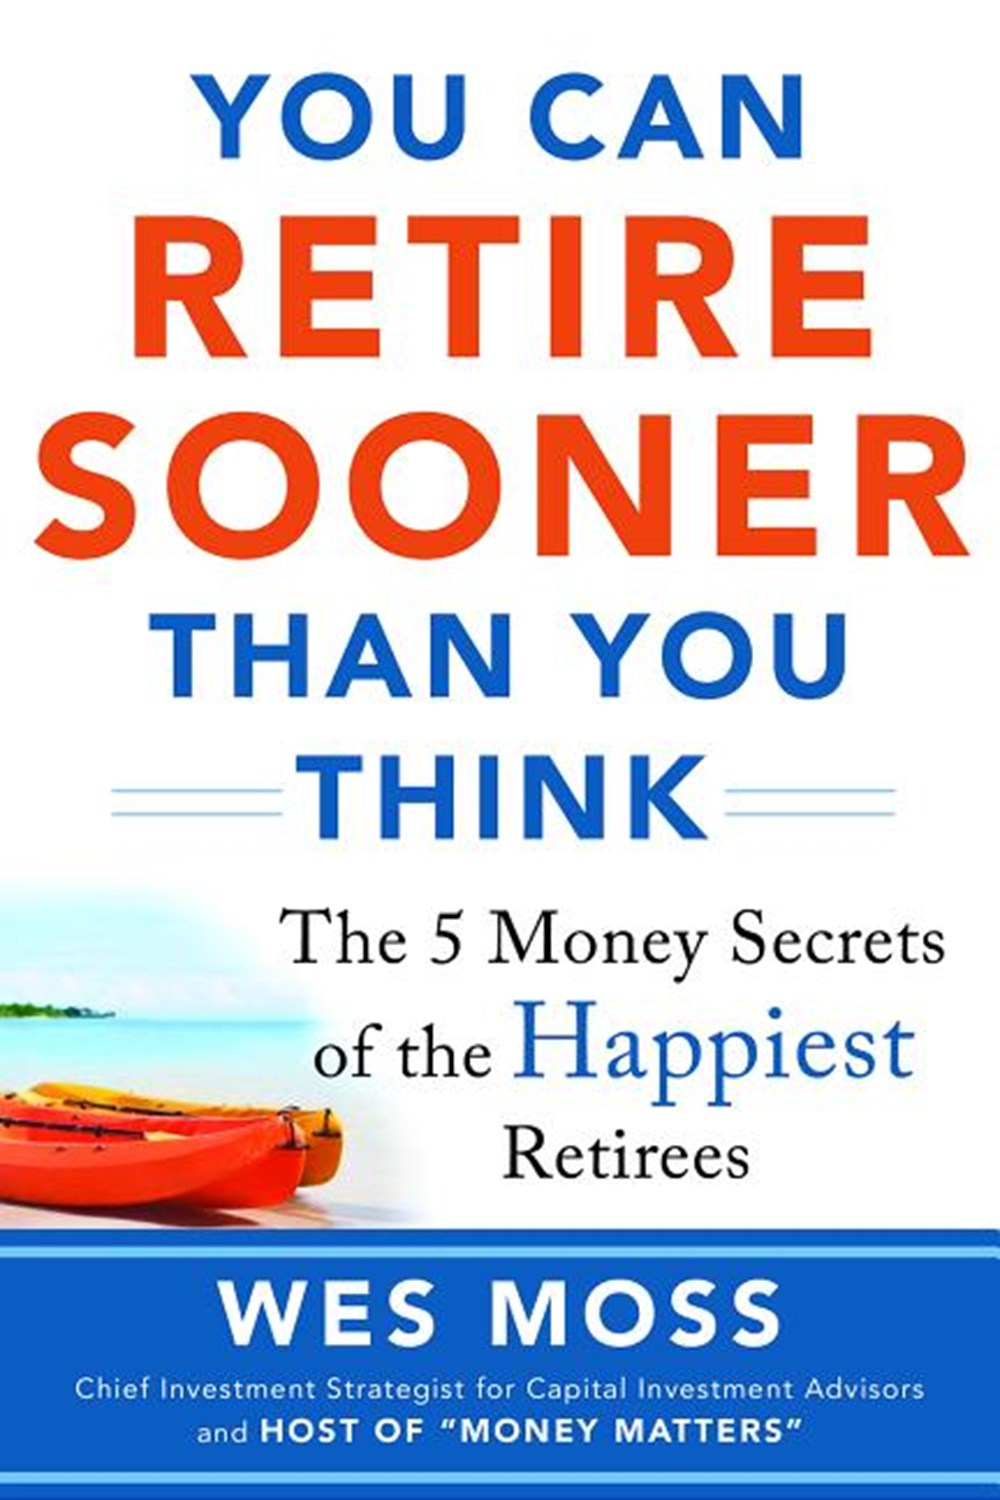 You Can Retire Sooner Than You Think The 5 Money Secrets of the Happiest Retirees